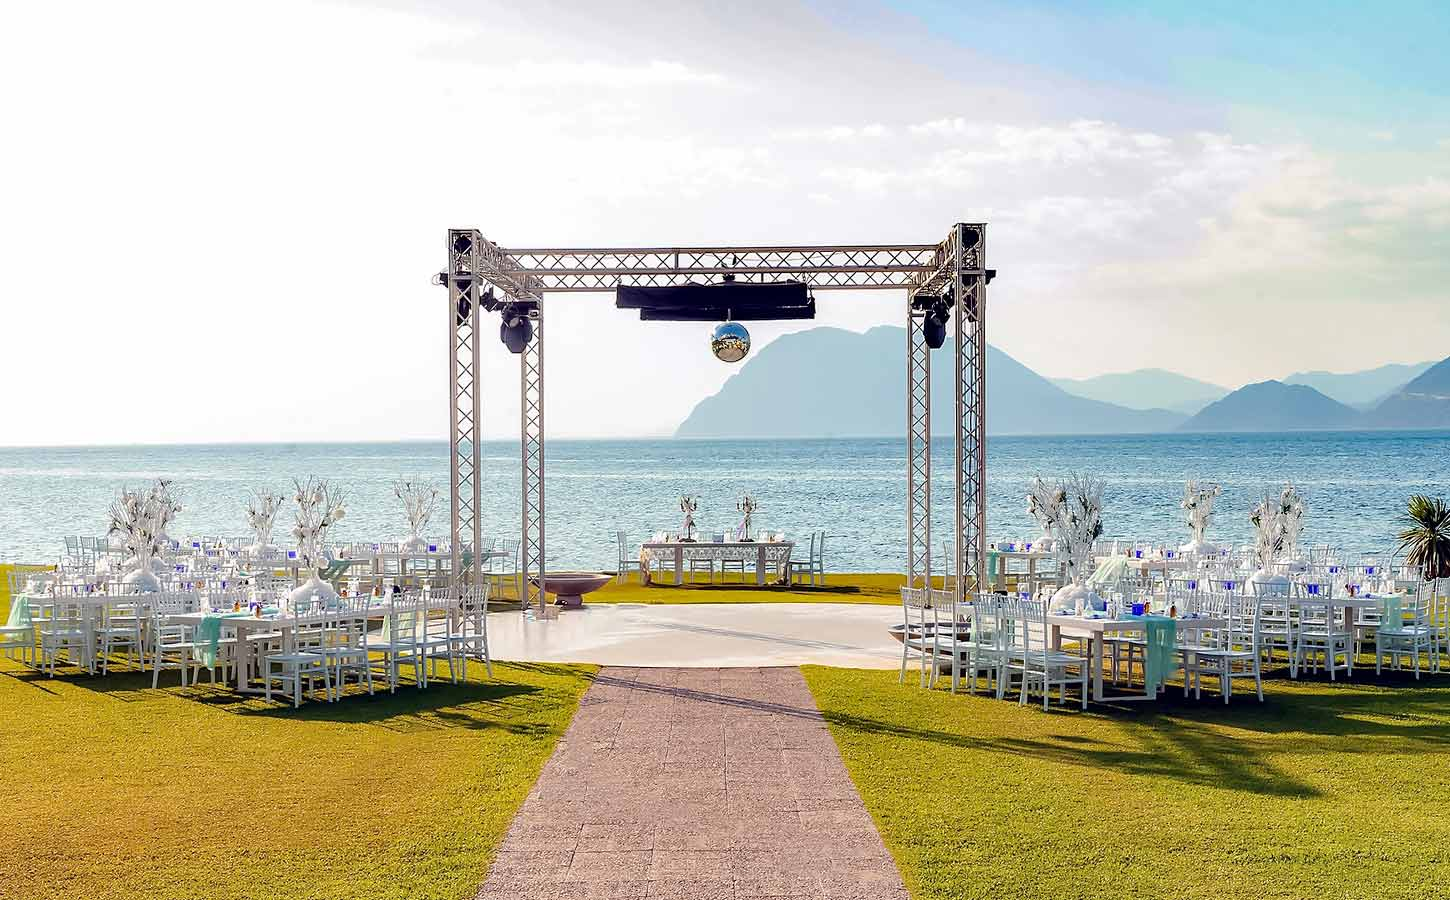 Sea-side-reception-venue-set-up-by-Diamond-Events,-Greece-Great Locations for Your Wedding in Greece